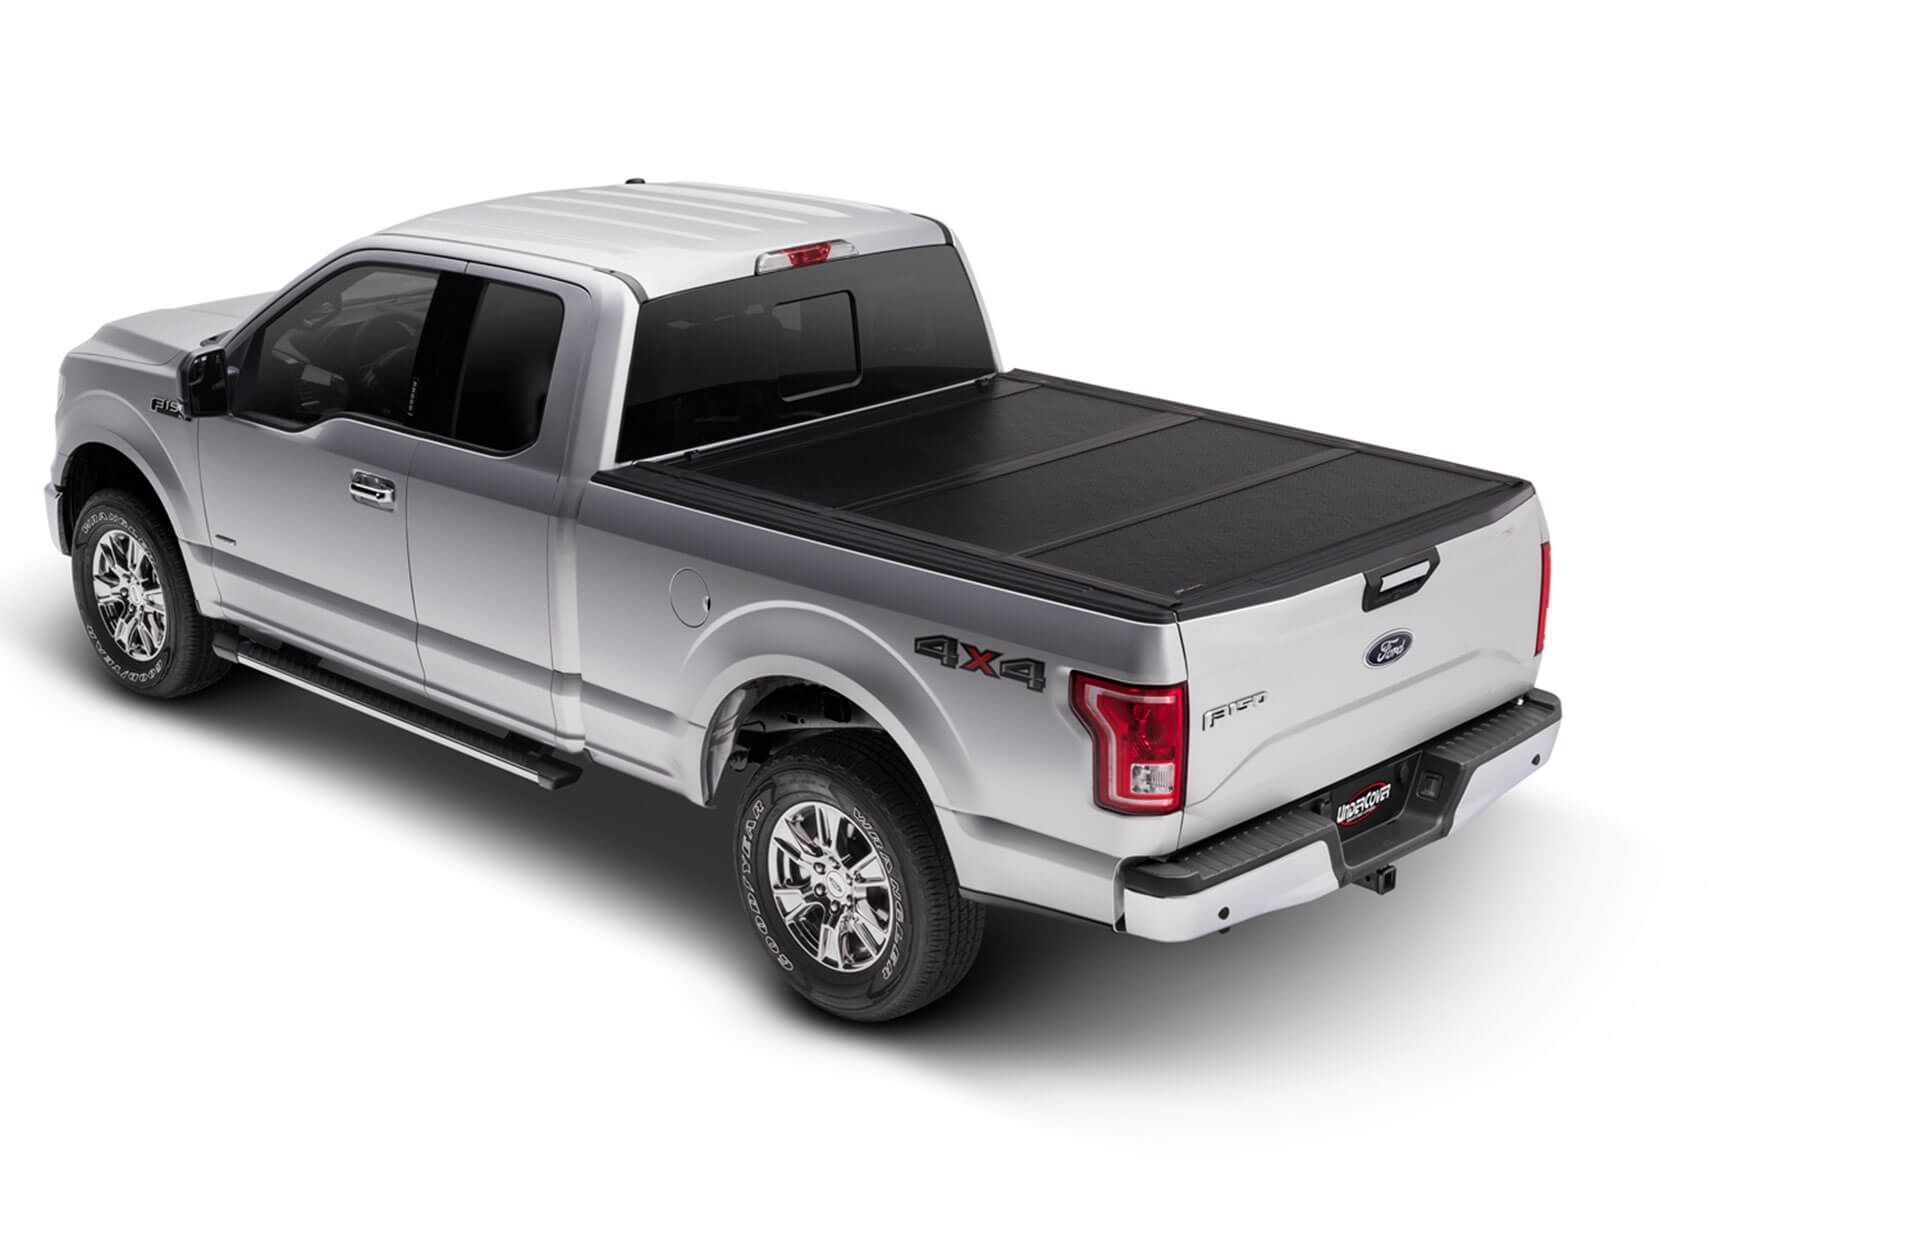 Requiring No Drilling The Hard Folding Undercover Flex Truck Bed Cover Is One Of The Strongest There Is It Is The Mo Tonneau Cover Truck Bed Truck Bed Covers